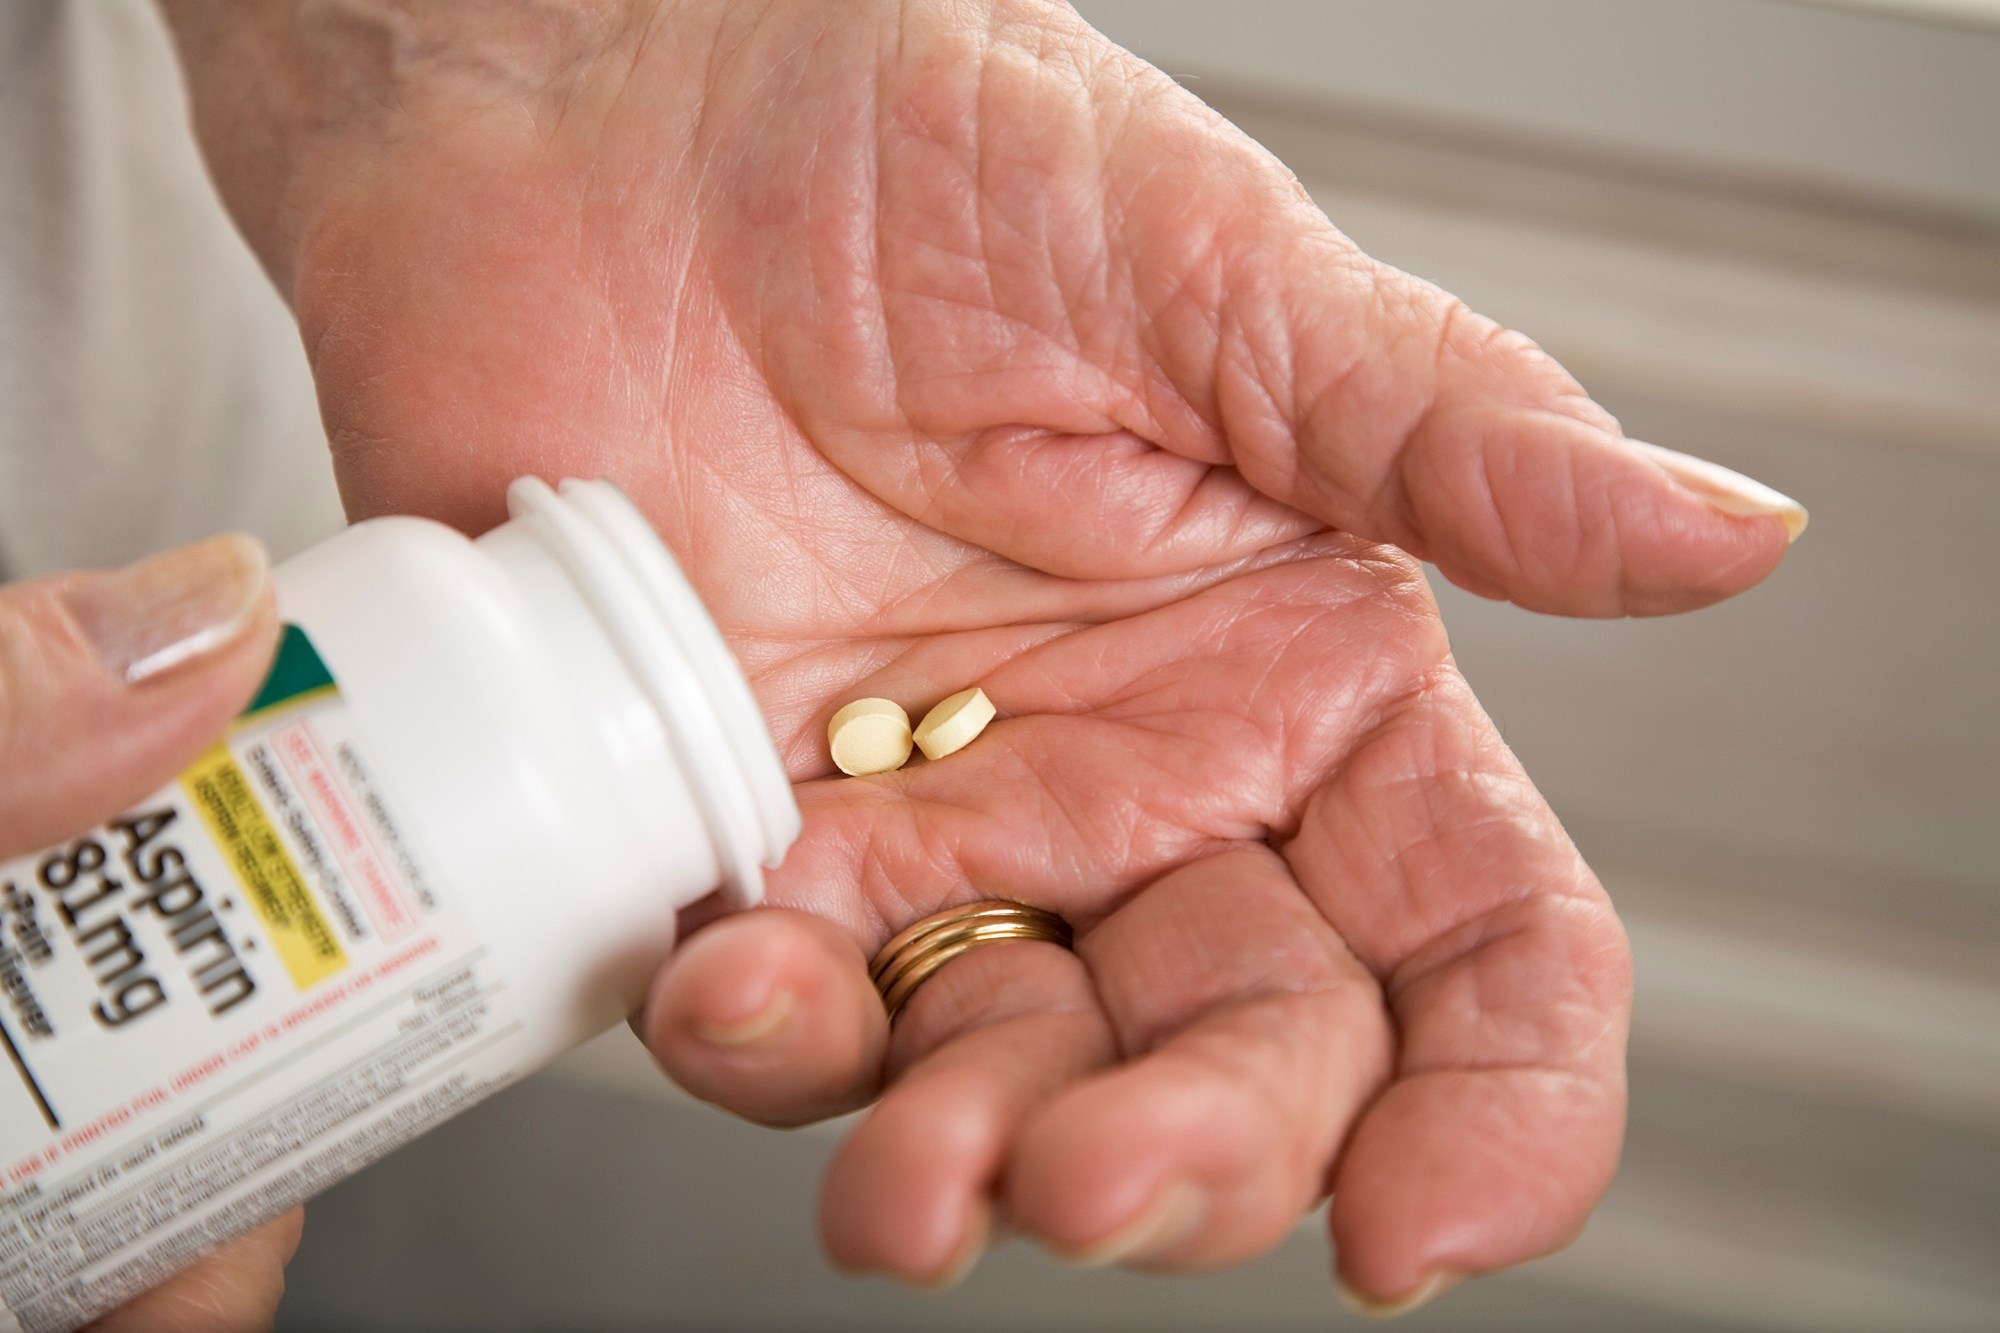 ASPREE Trial: Aspirin Associated With Higher Mortality, Hemorrhage Risk in Older Adults